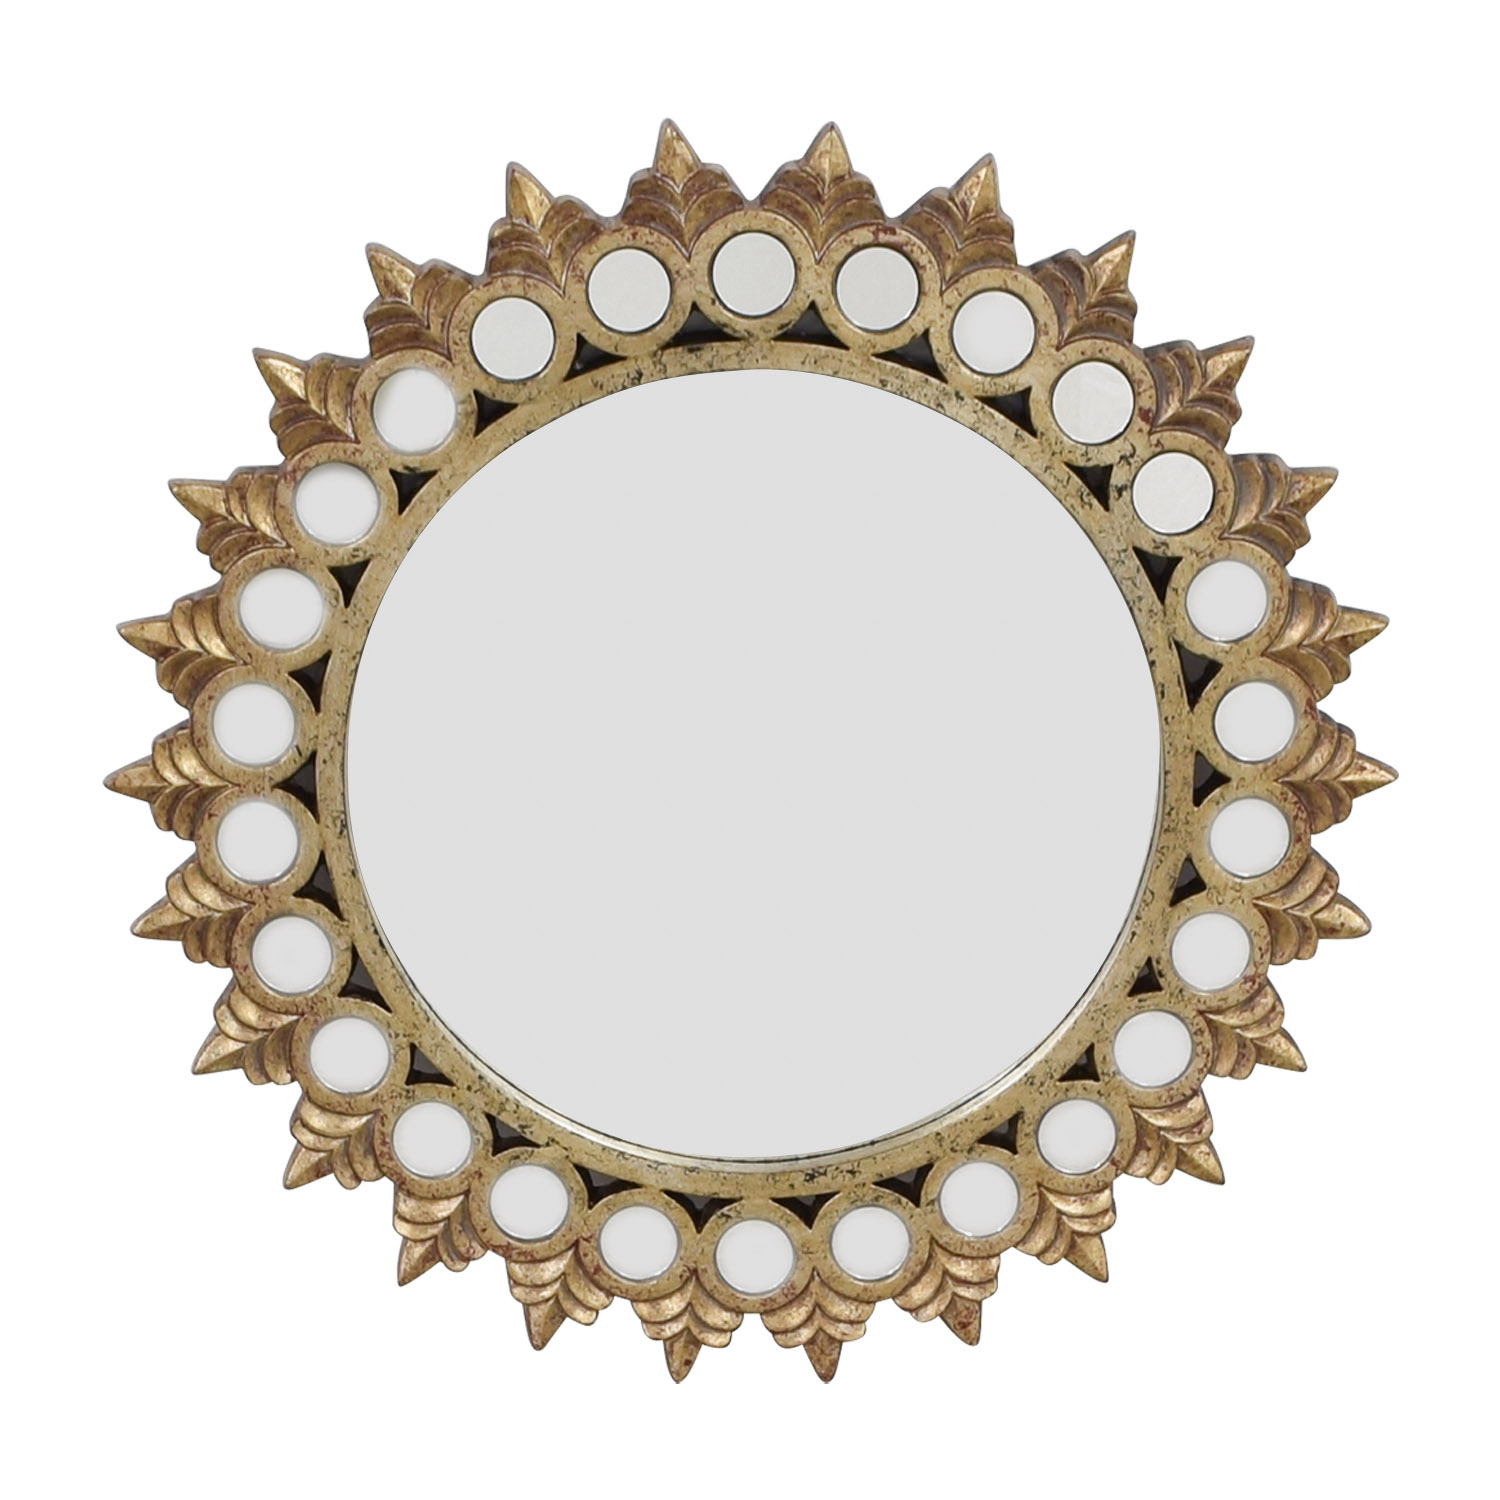 Round Gold Mirrors - Mirror Ideas pertaining to Kentwood Round Wall Mirrors (Image 24 of 30)